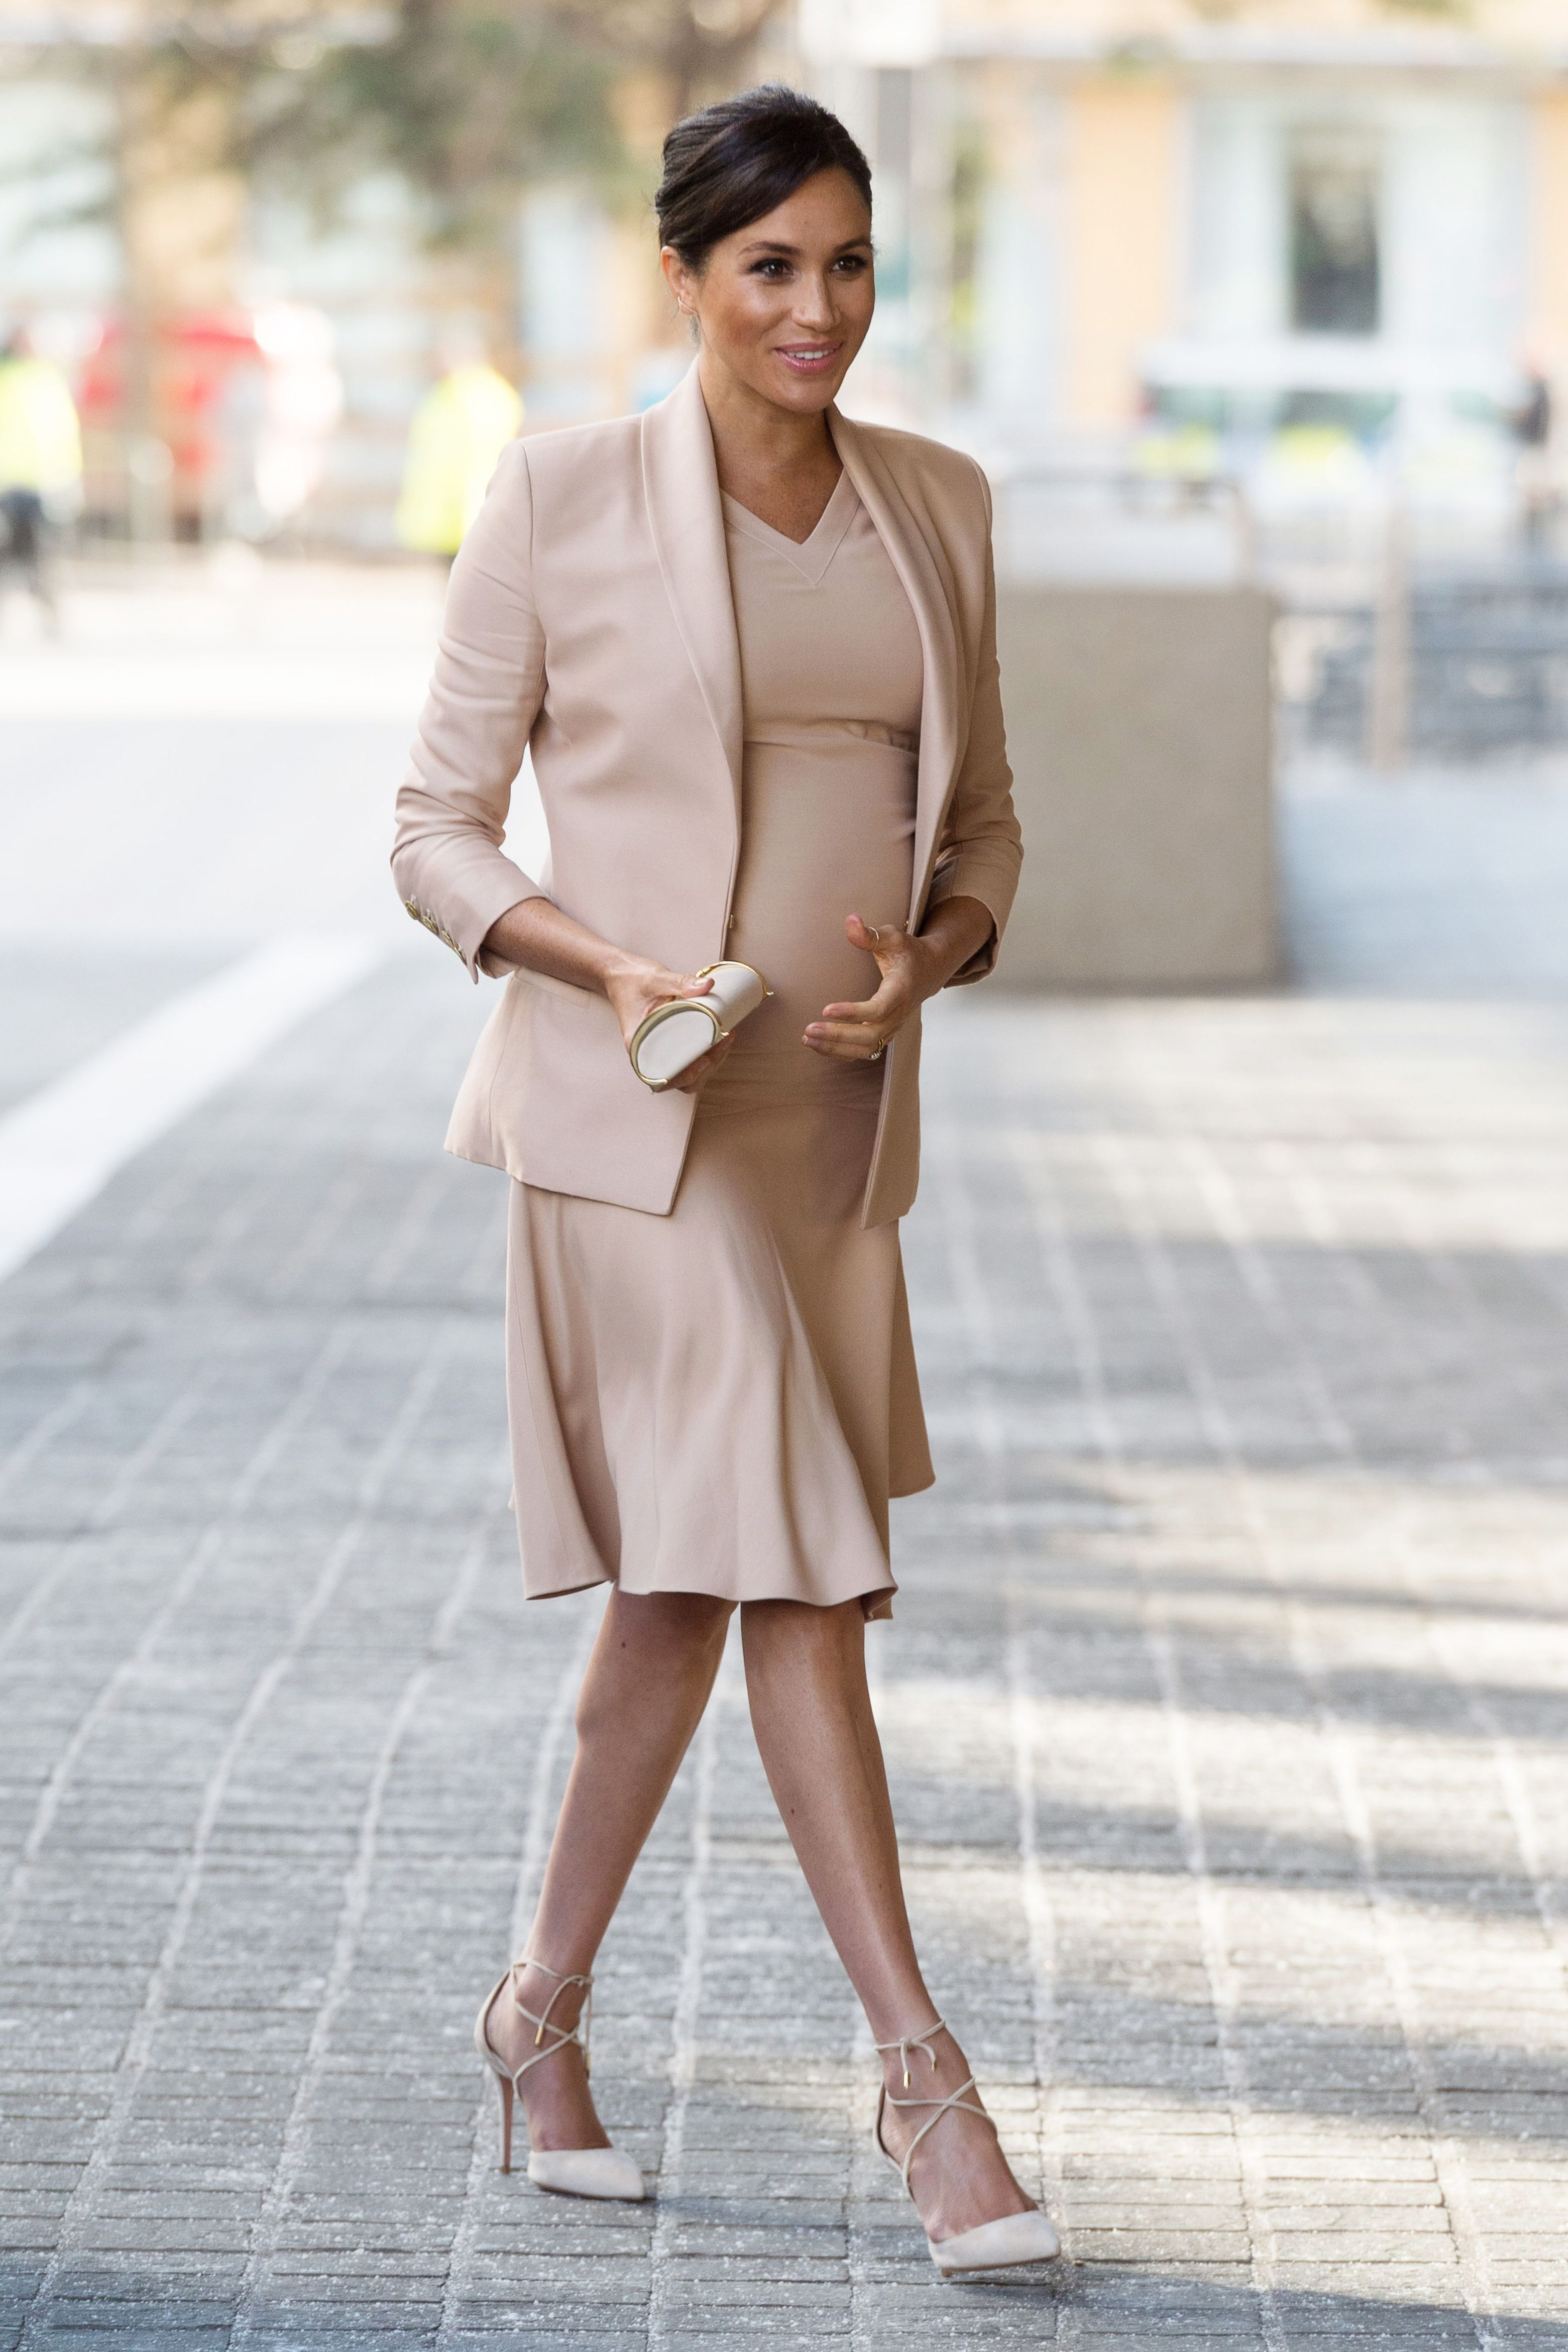 7f1016645a0 Shop Meghan Markle s Style - How to Wear Meghan Markle s Outfits